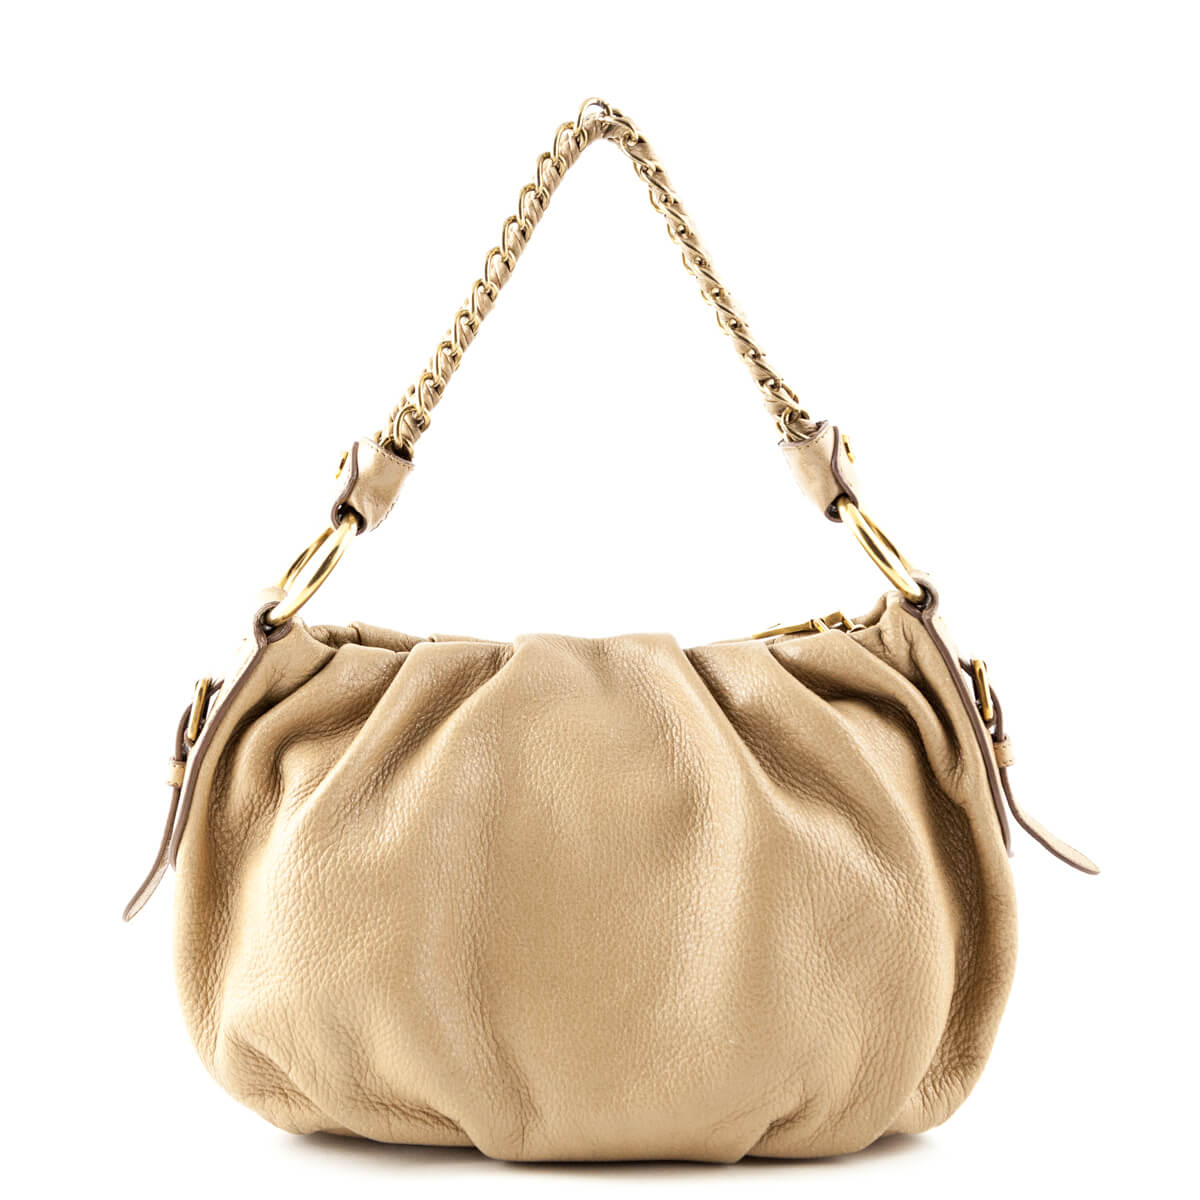 12ba3215c9e9 ... Prada Tan Sparkly Nappa Leather Chain Shoulder Bag - LOVE that BAG -  Preowned Authentic Designer ...